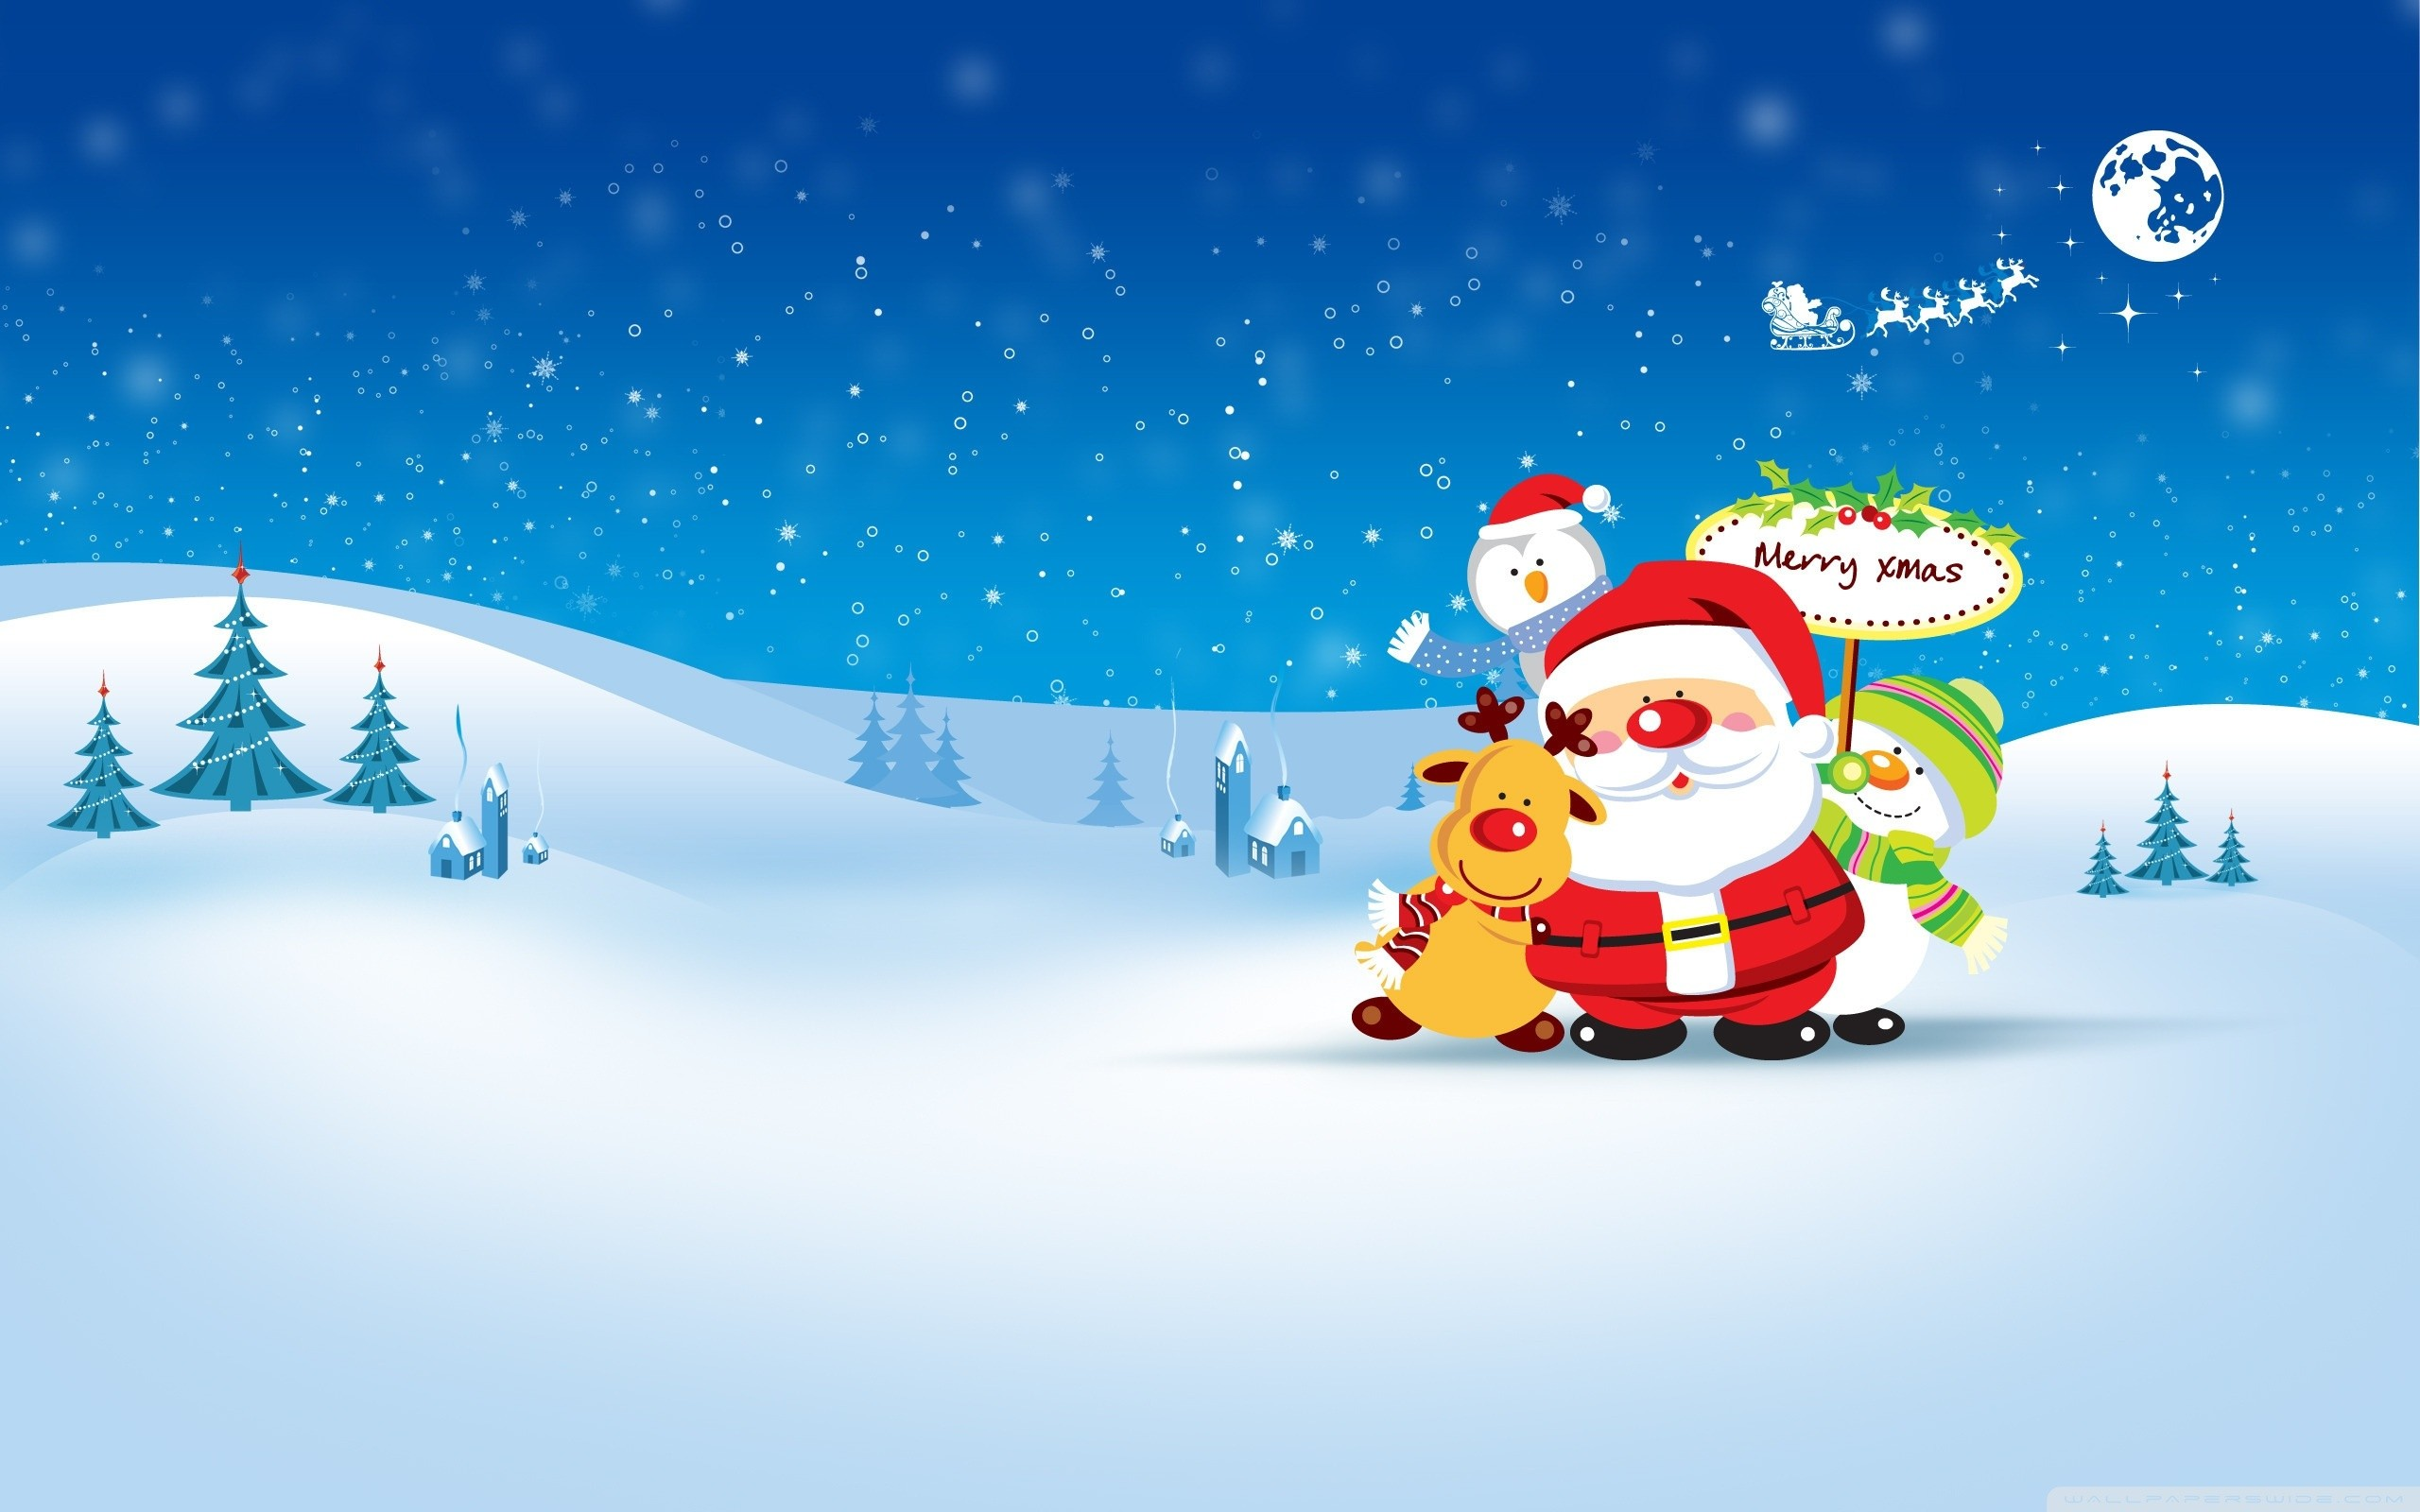 25 Christmas Powerpoint Backgrounds Download Free Stunning Full